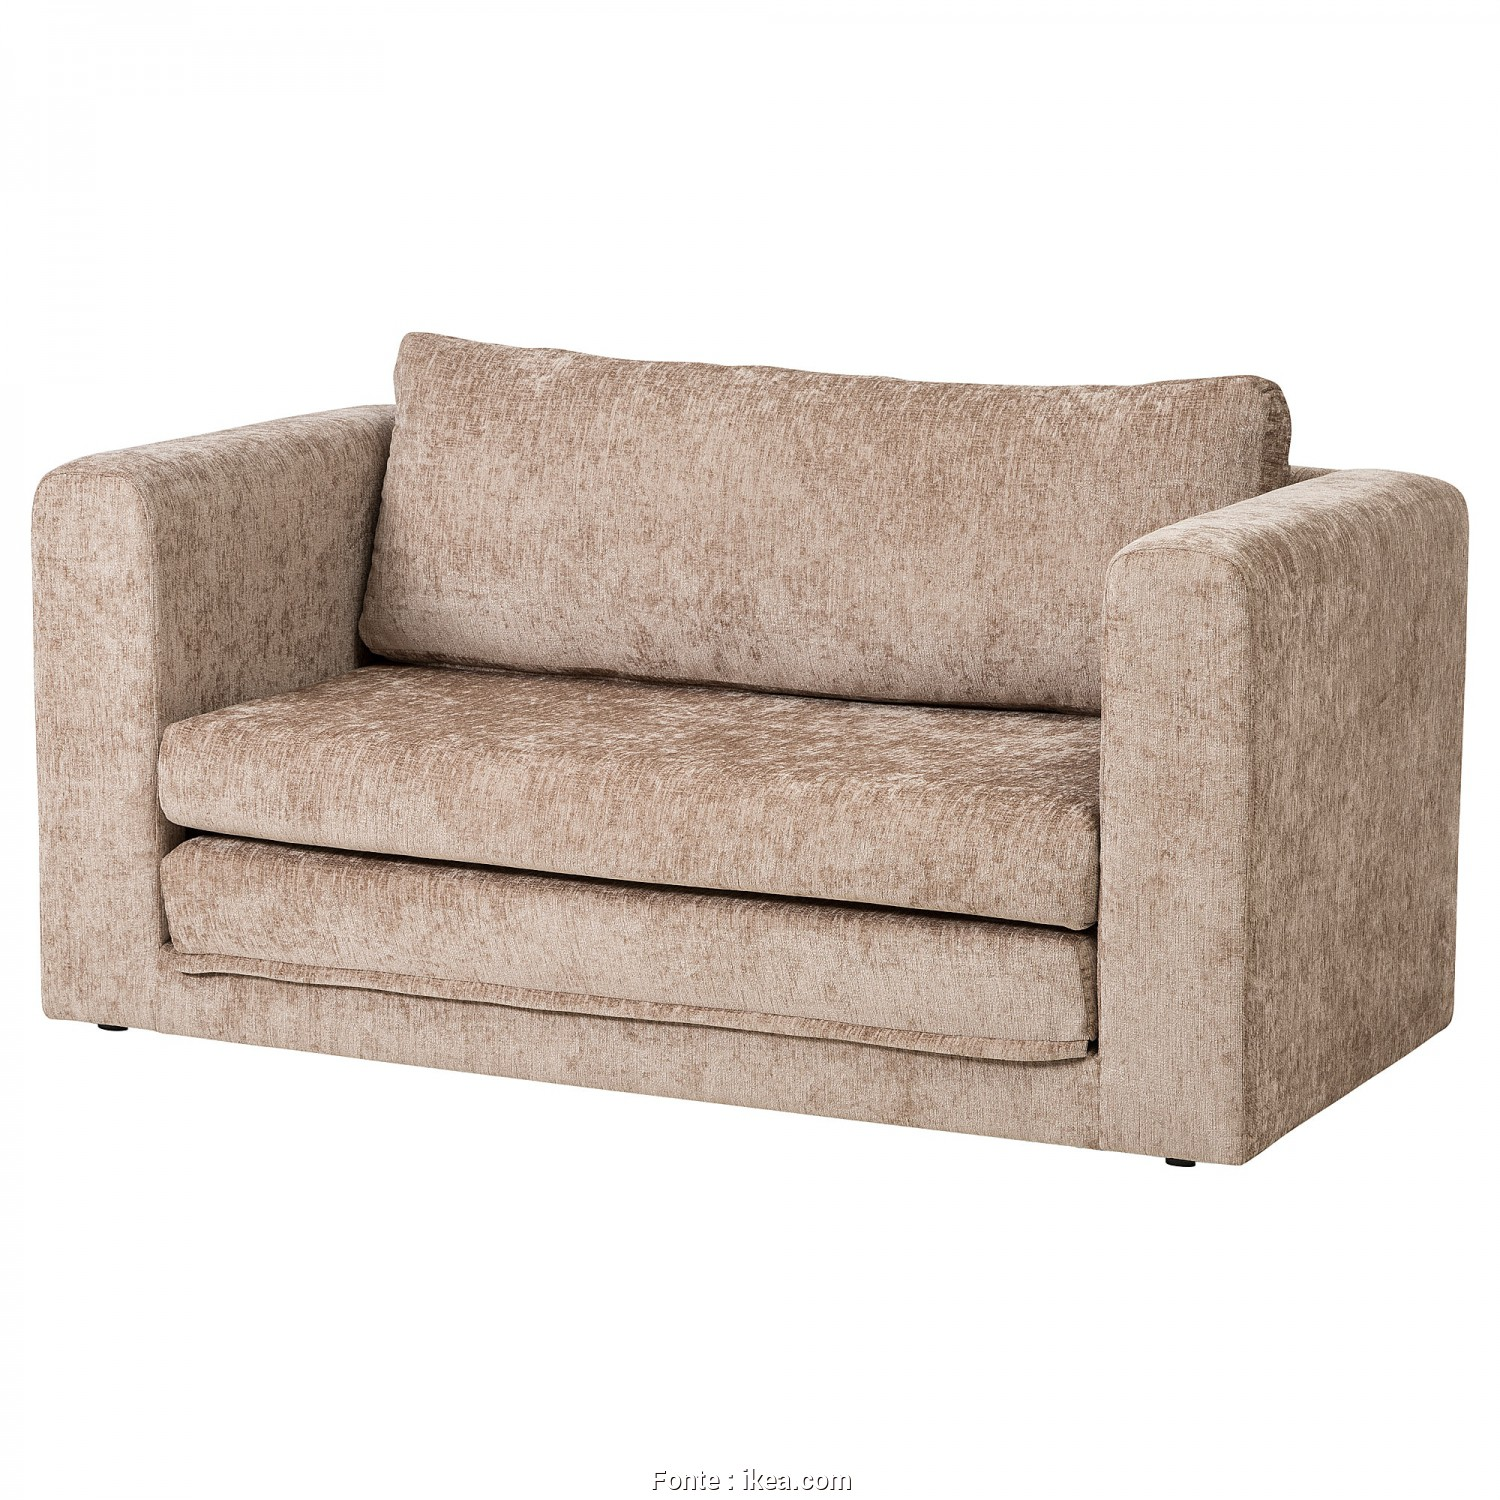 Ikea Vilasund 2 Seat Sofa, Review, Esclusivo IKEA ASKEBY 2-Seat Sofa-Bed Readily Converts Into A Bed